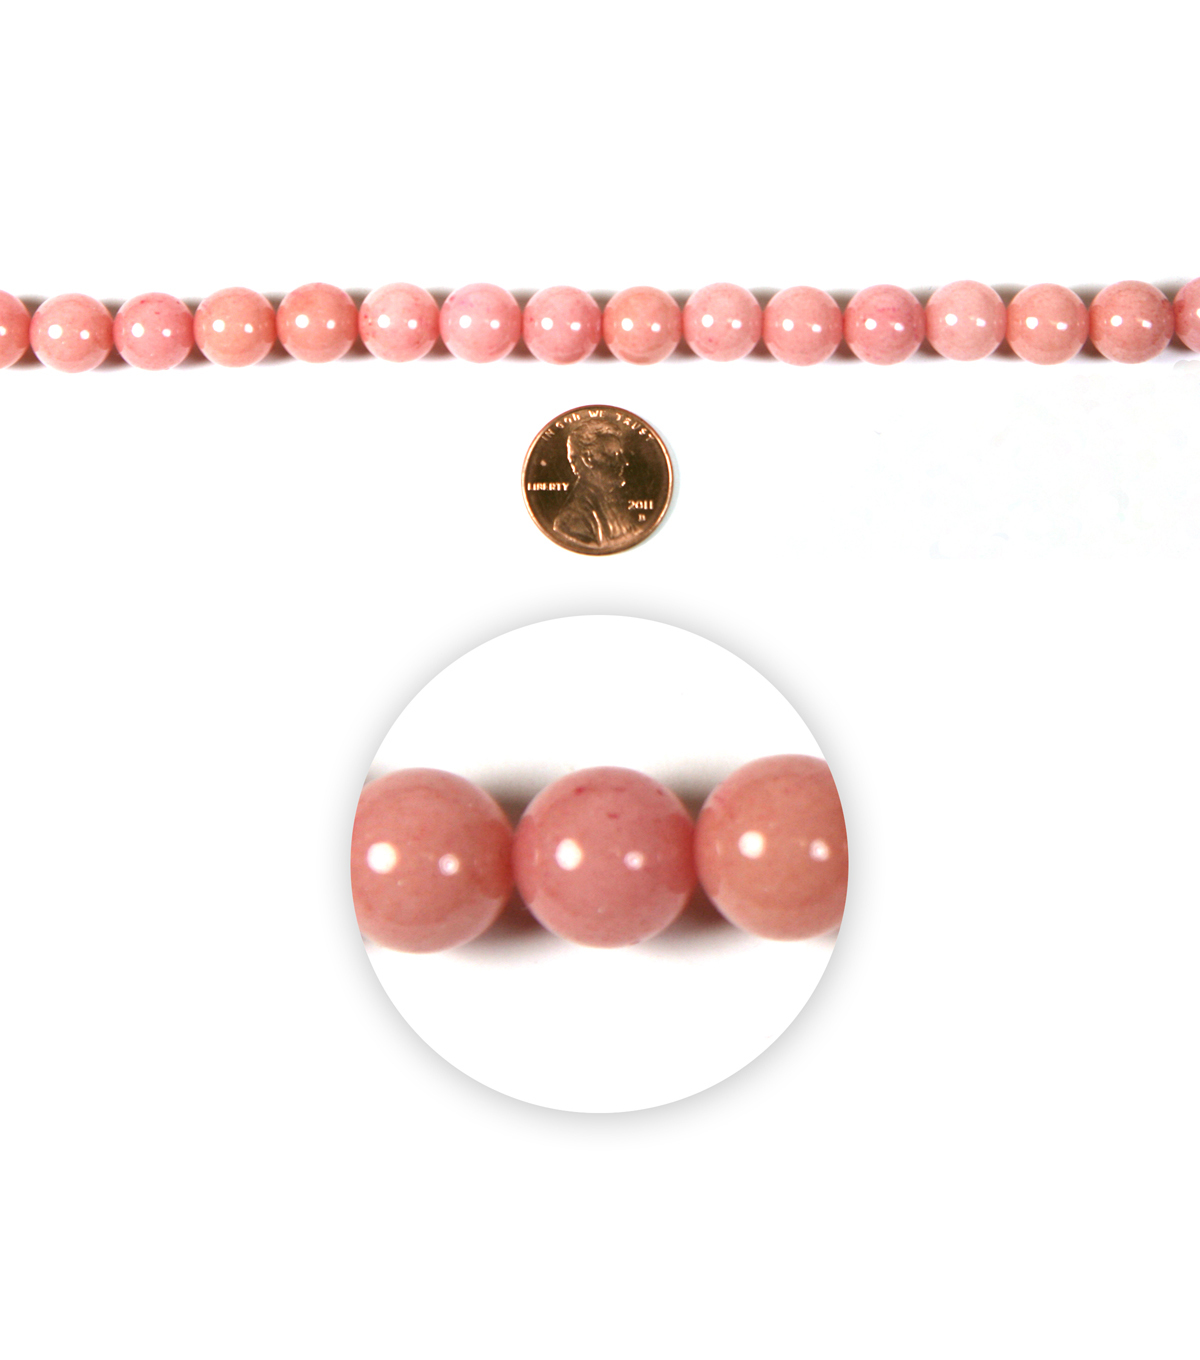 Blue Moon Strung Mountain Jade Beads,Round,Pink